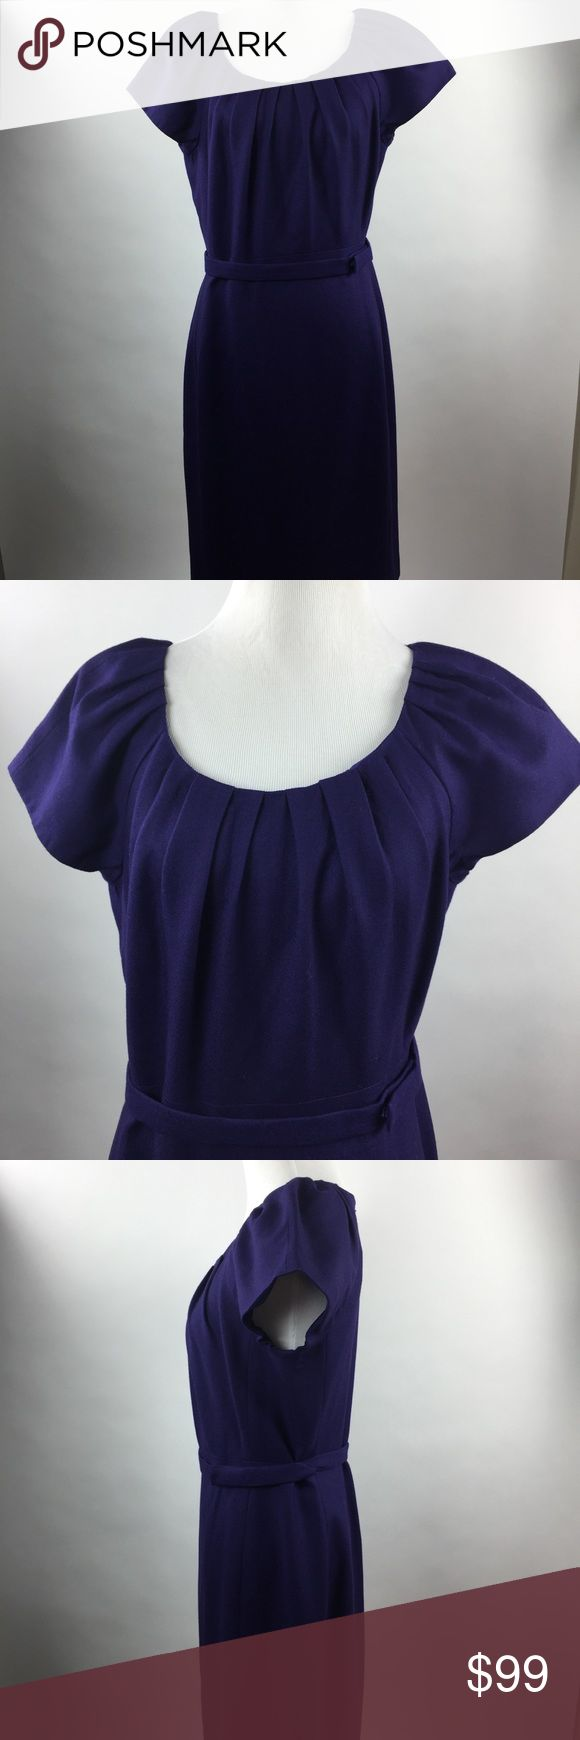 Elie Tahari Alison Sheath dress purple 8 new wool Elie Tahari new with tags Alison Pleated neck, cap sleeve, belted Sheath dress in grape harvest size 8.  Fully lined with back zipper.  Chest - 35 in. Waist- 31 in. Elie Tahari Dresses